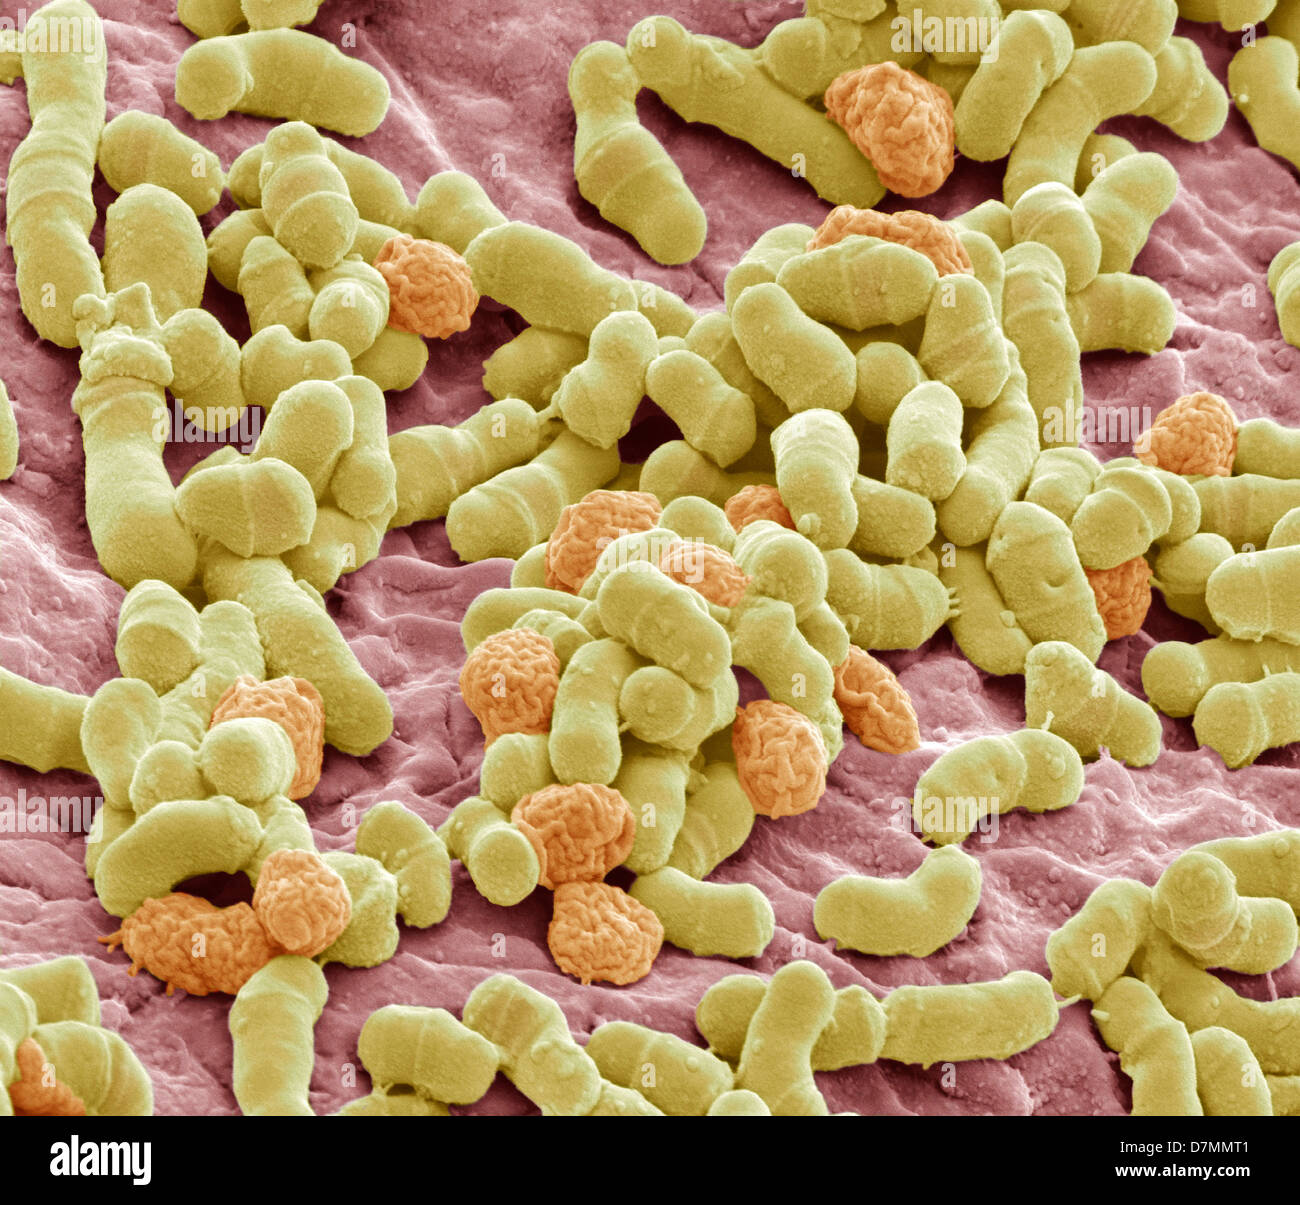 Athlete's foot fungus, SEM - Stock Image